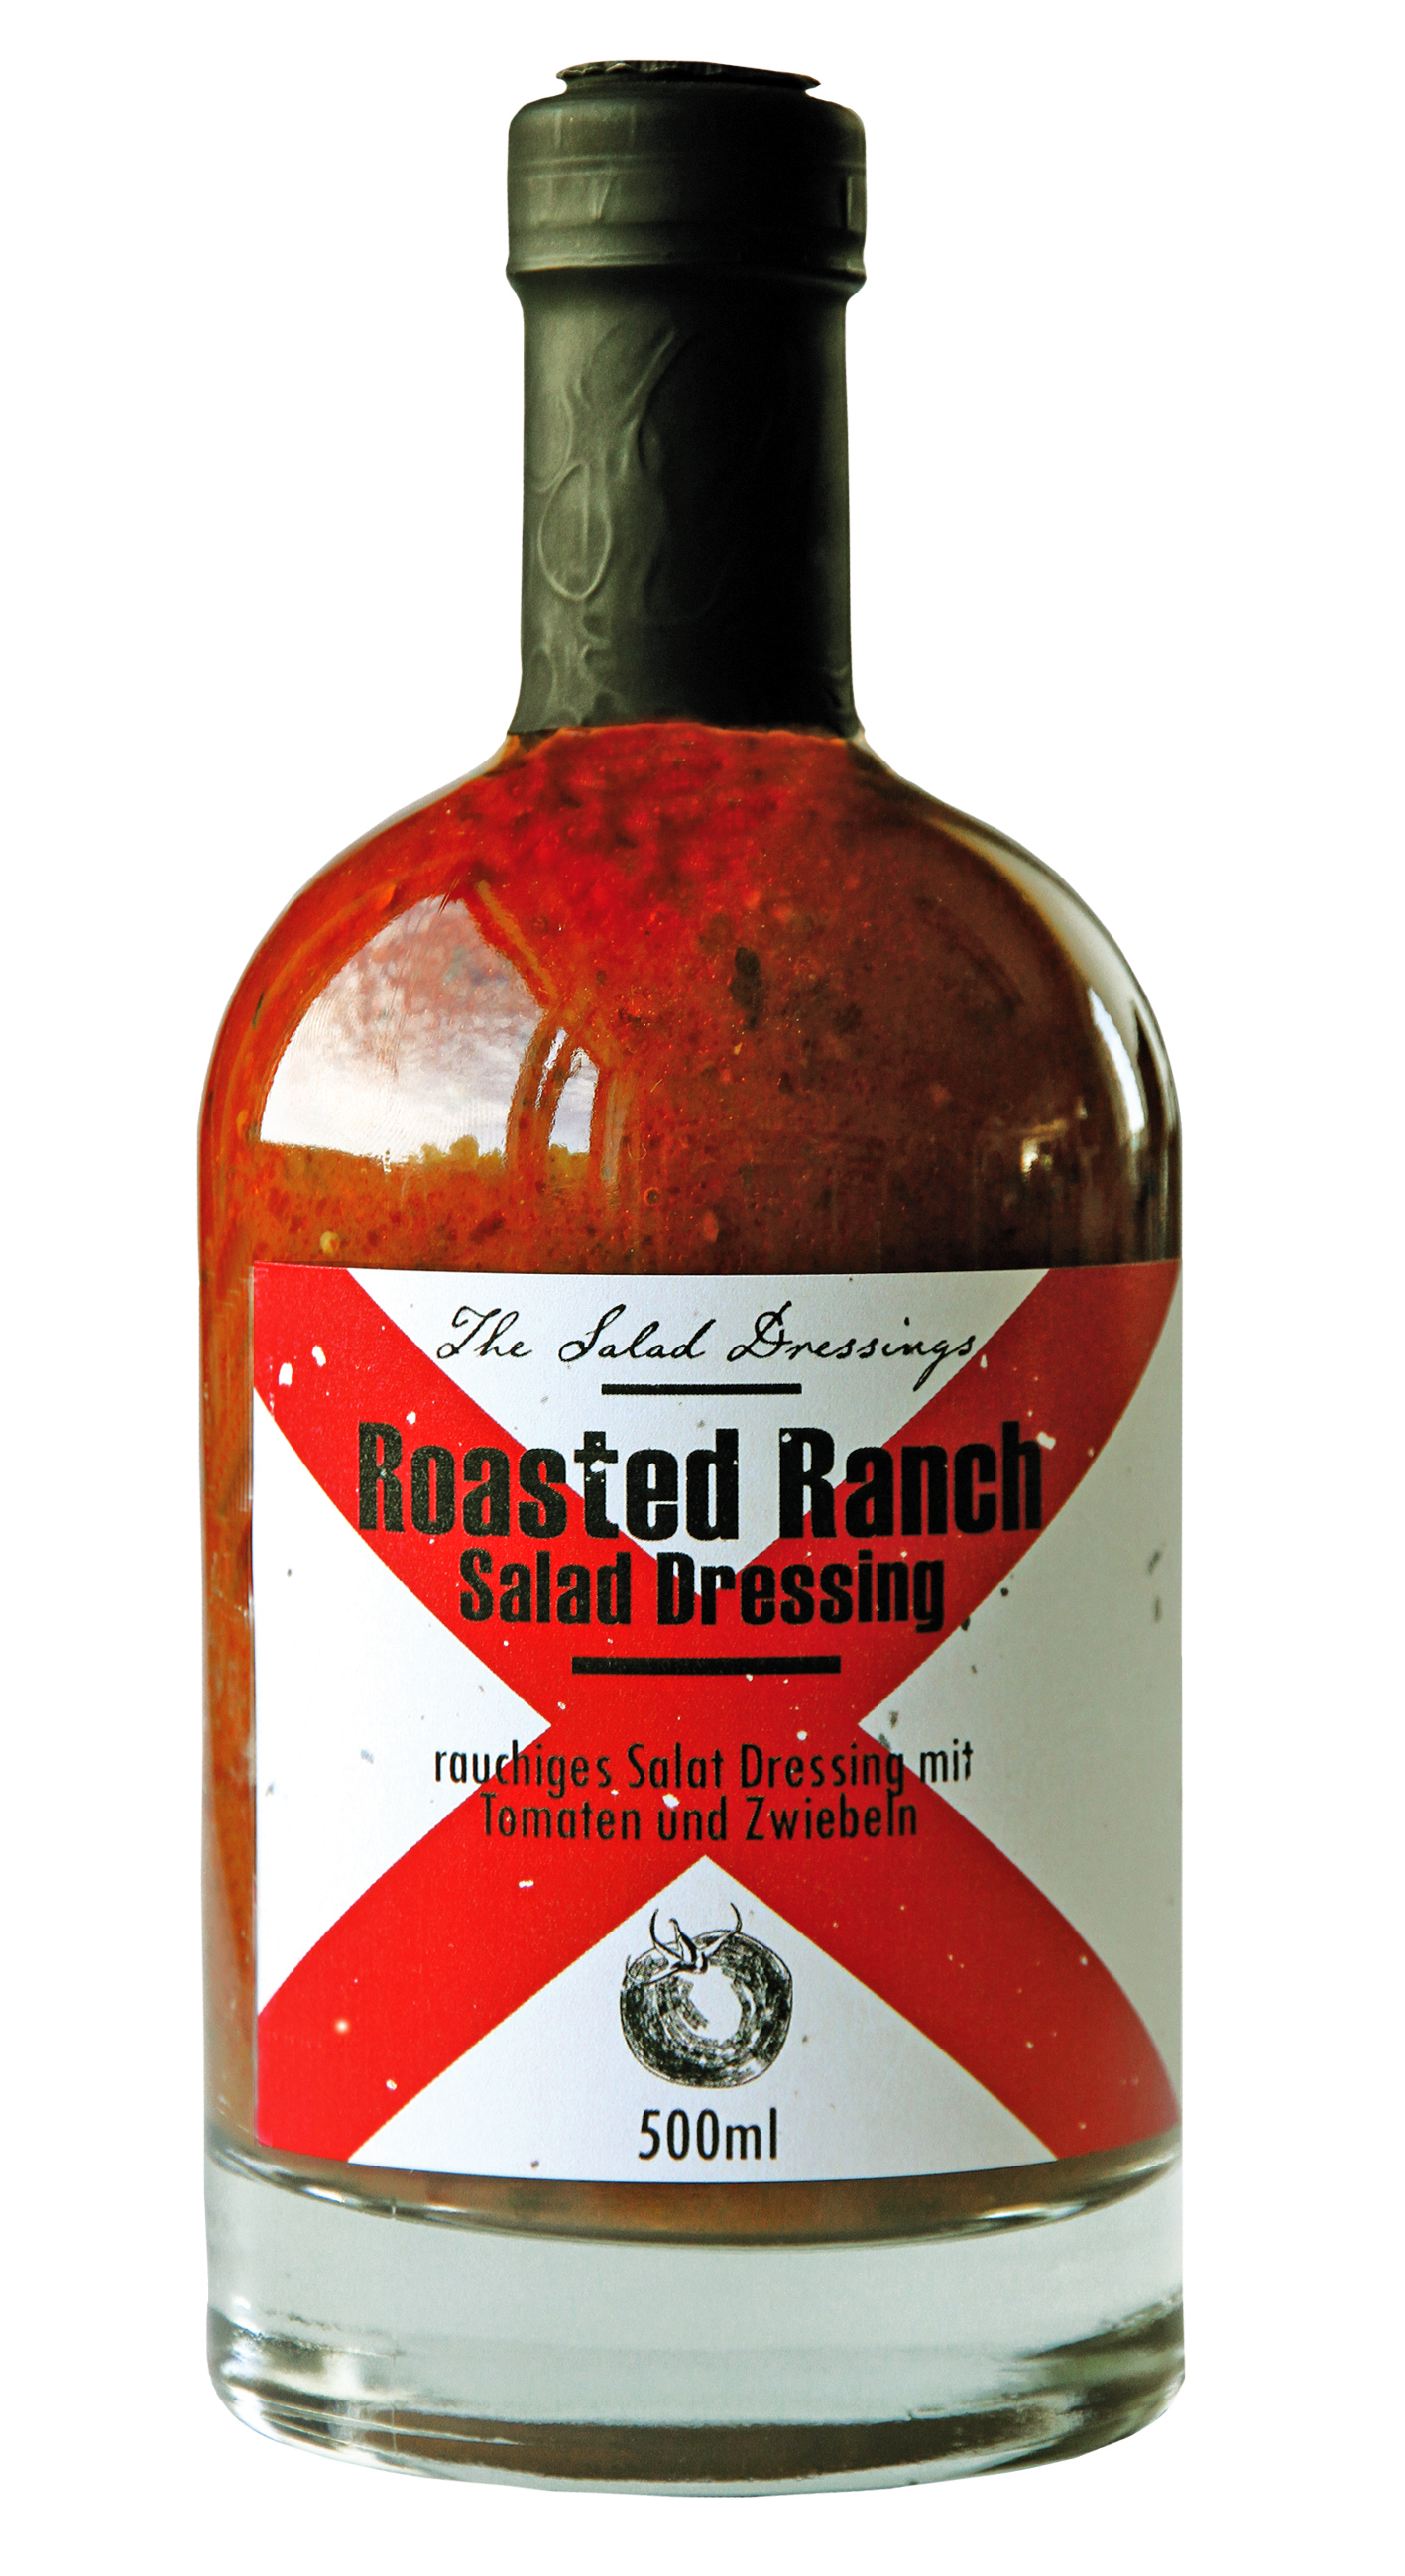 Roasted Ranch Salad Dressing 500ml